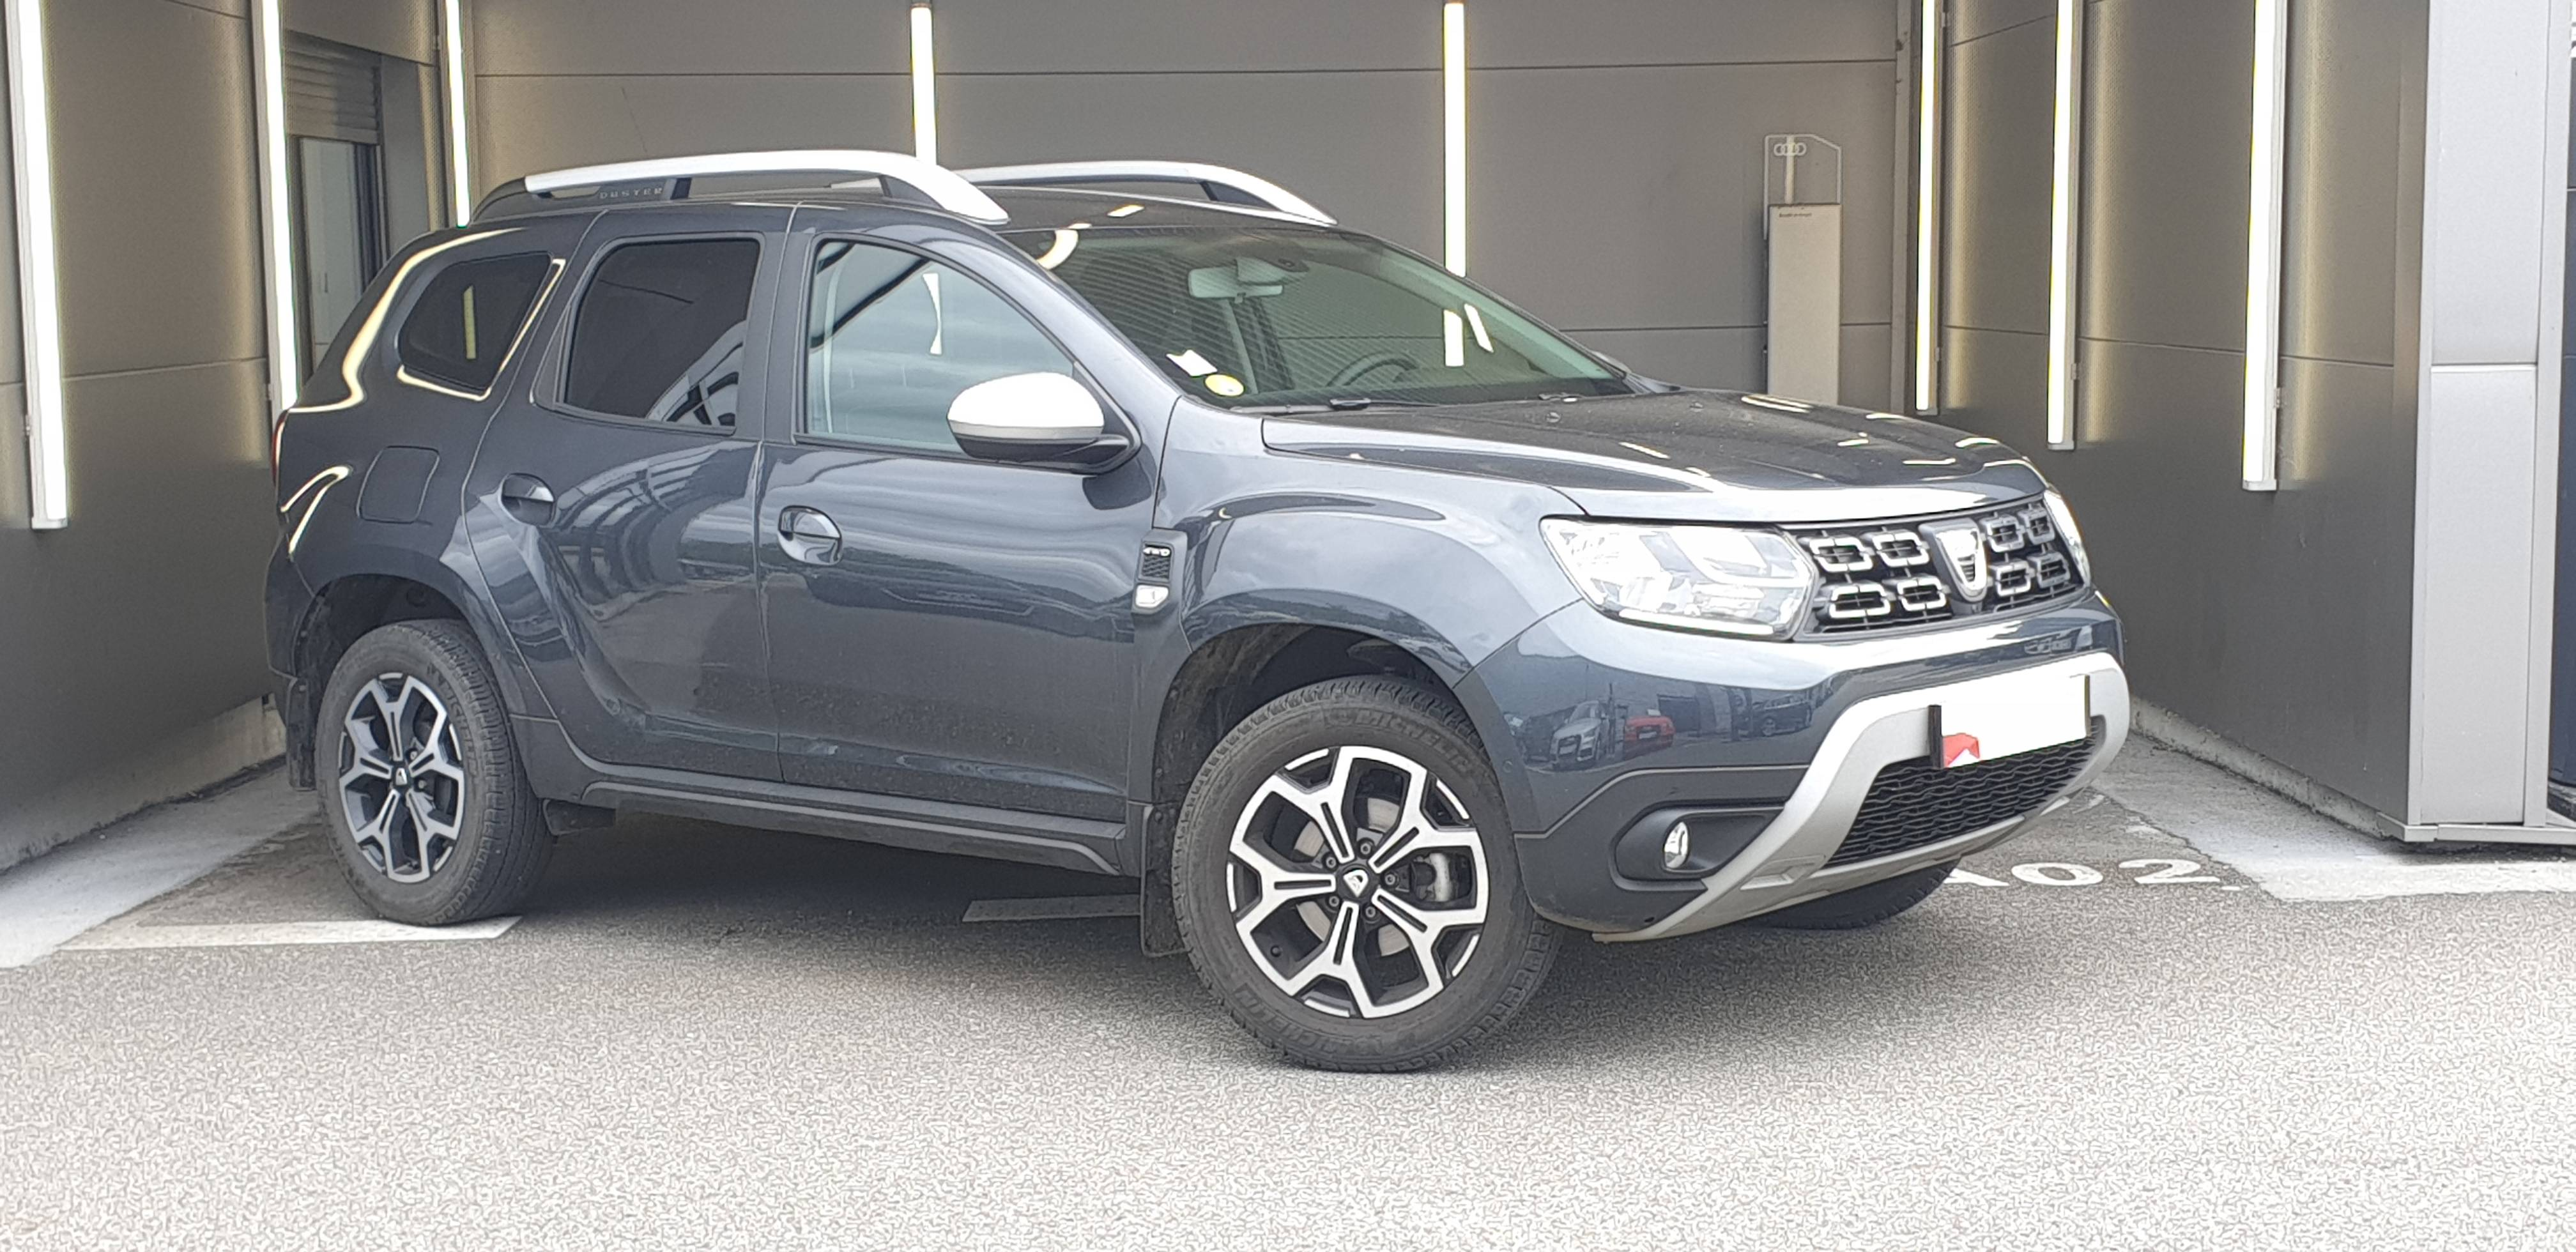 1 - Duster dCi 110 4x4